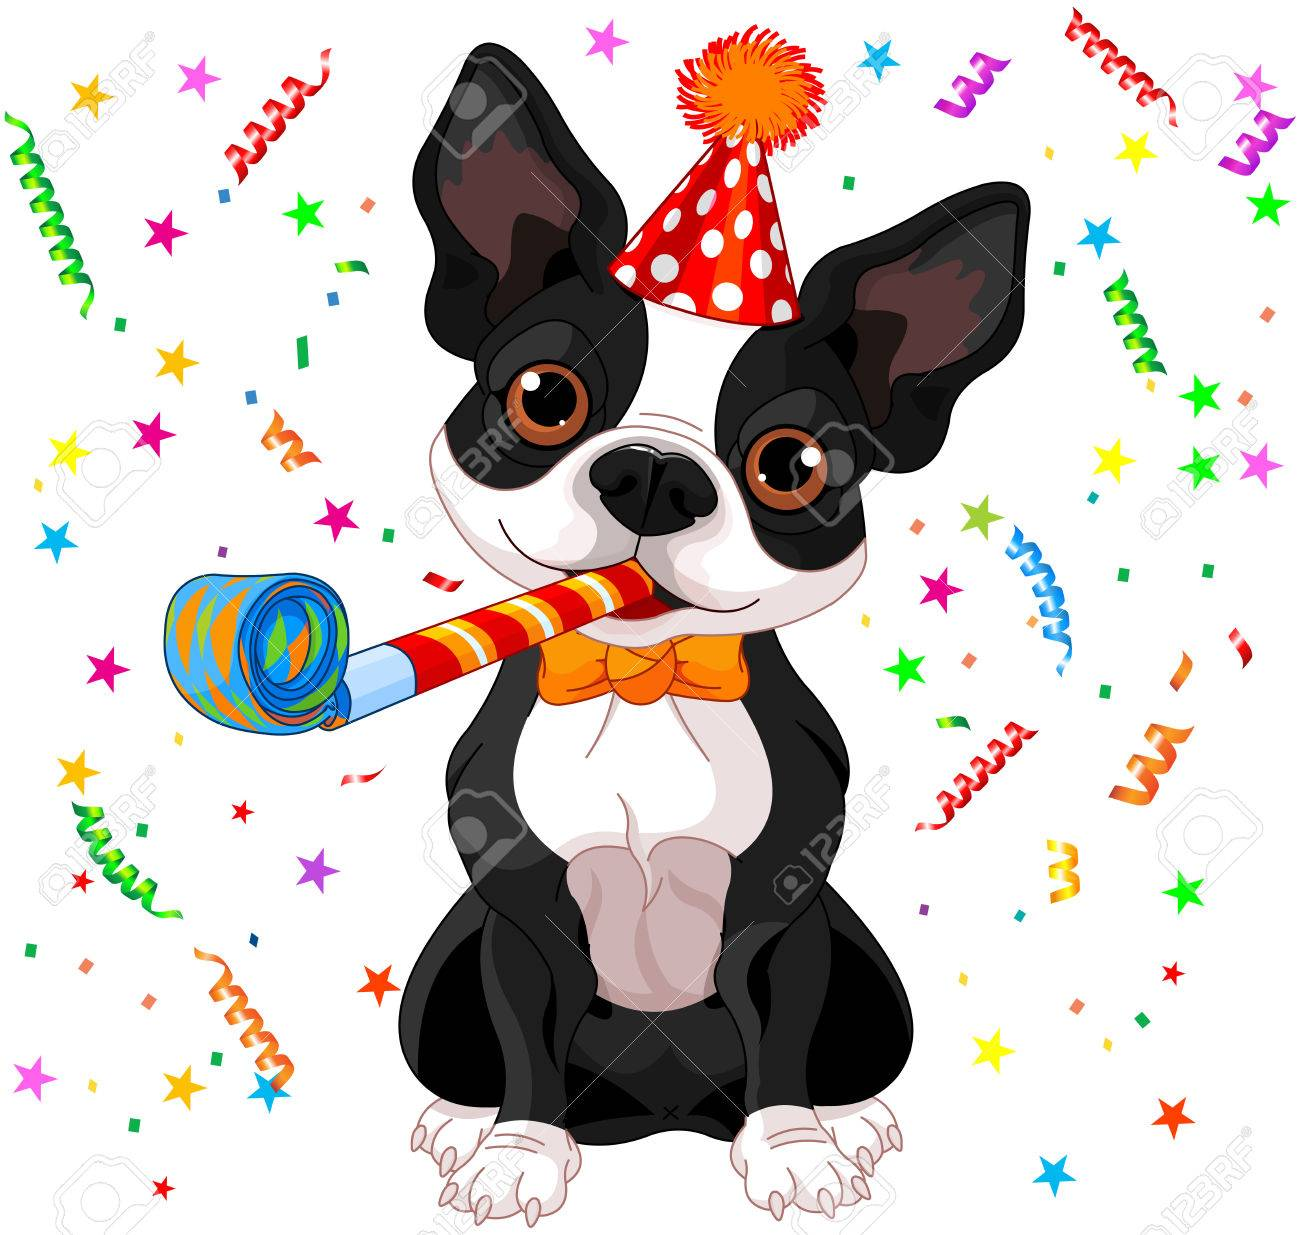 Peur des gens/humains - Page 2 35588778-illustration-of-cute-boston-terrier-celebrating